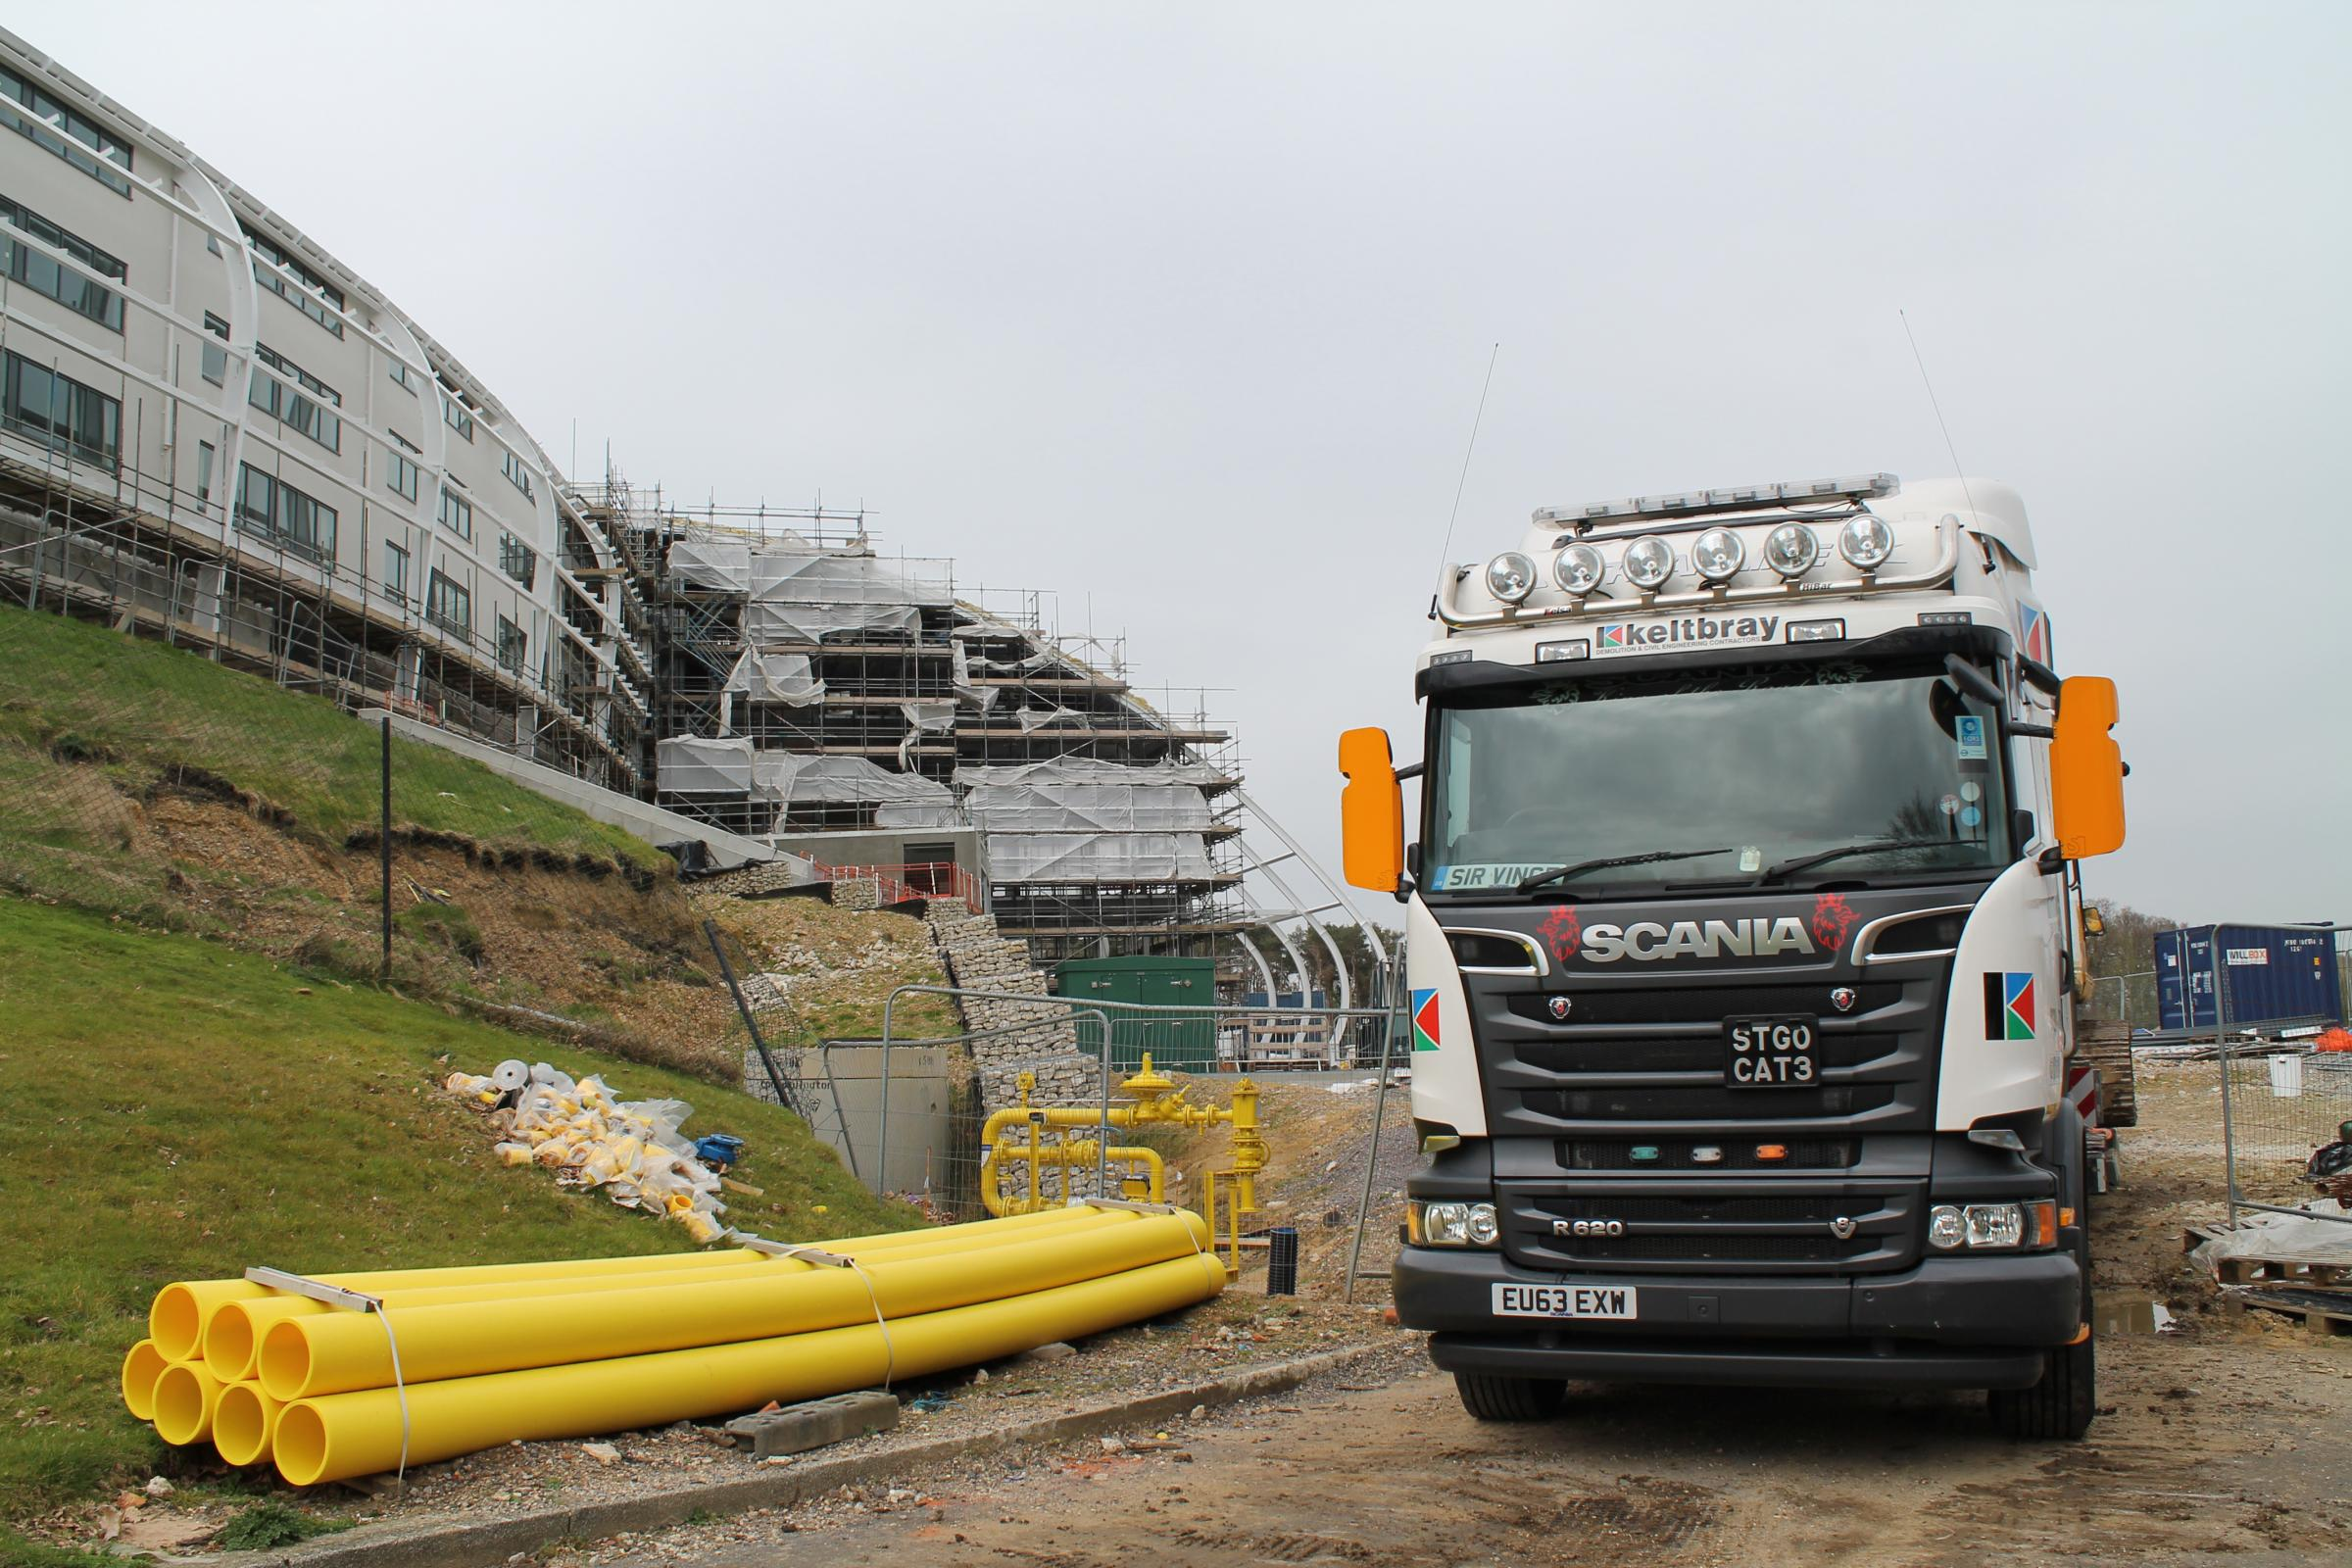 Work is back underway at the Ageas Bowl hotel